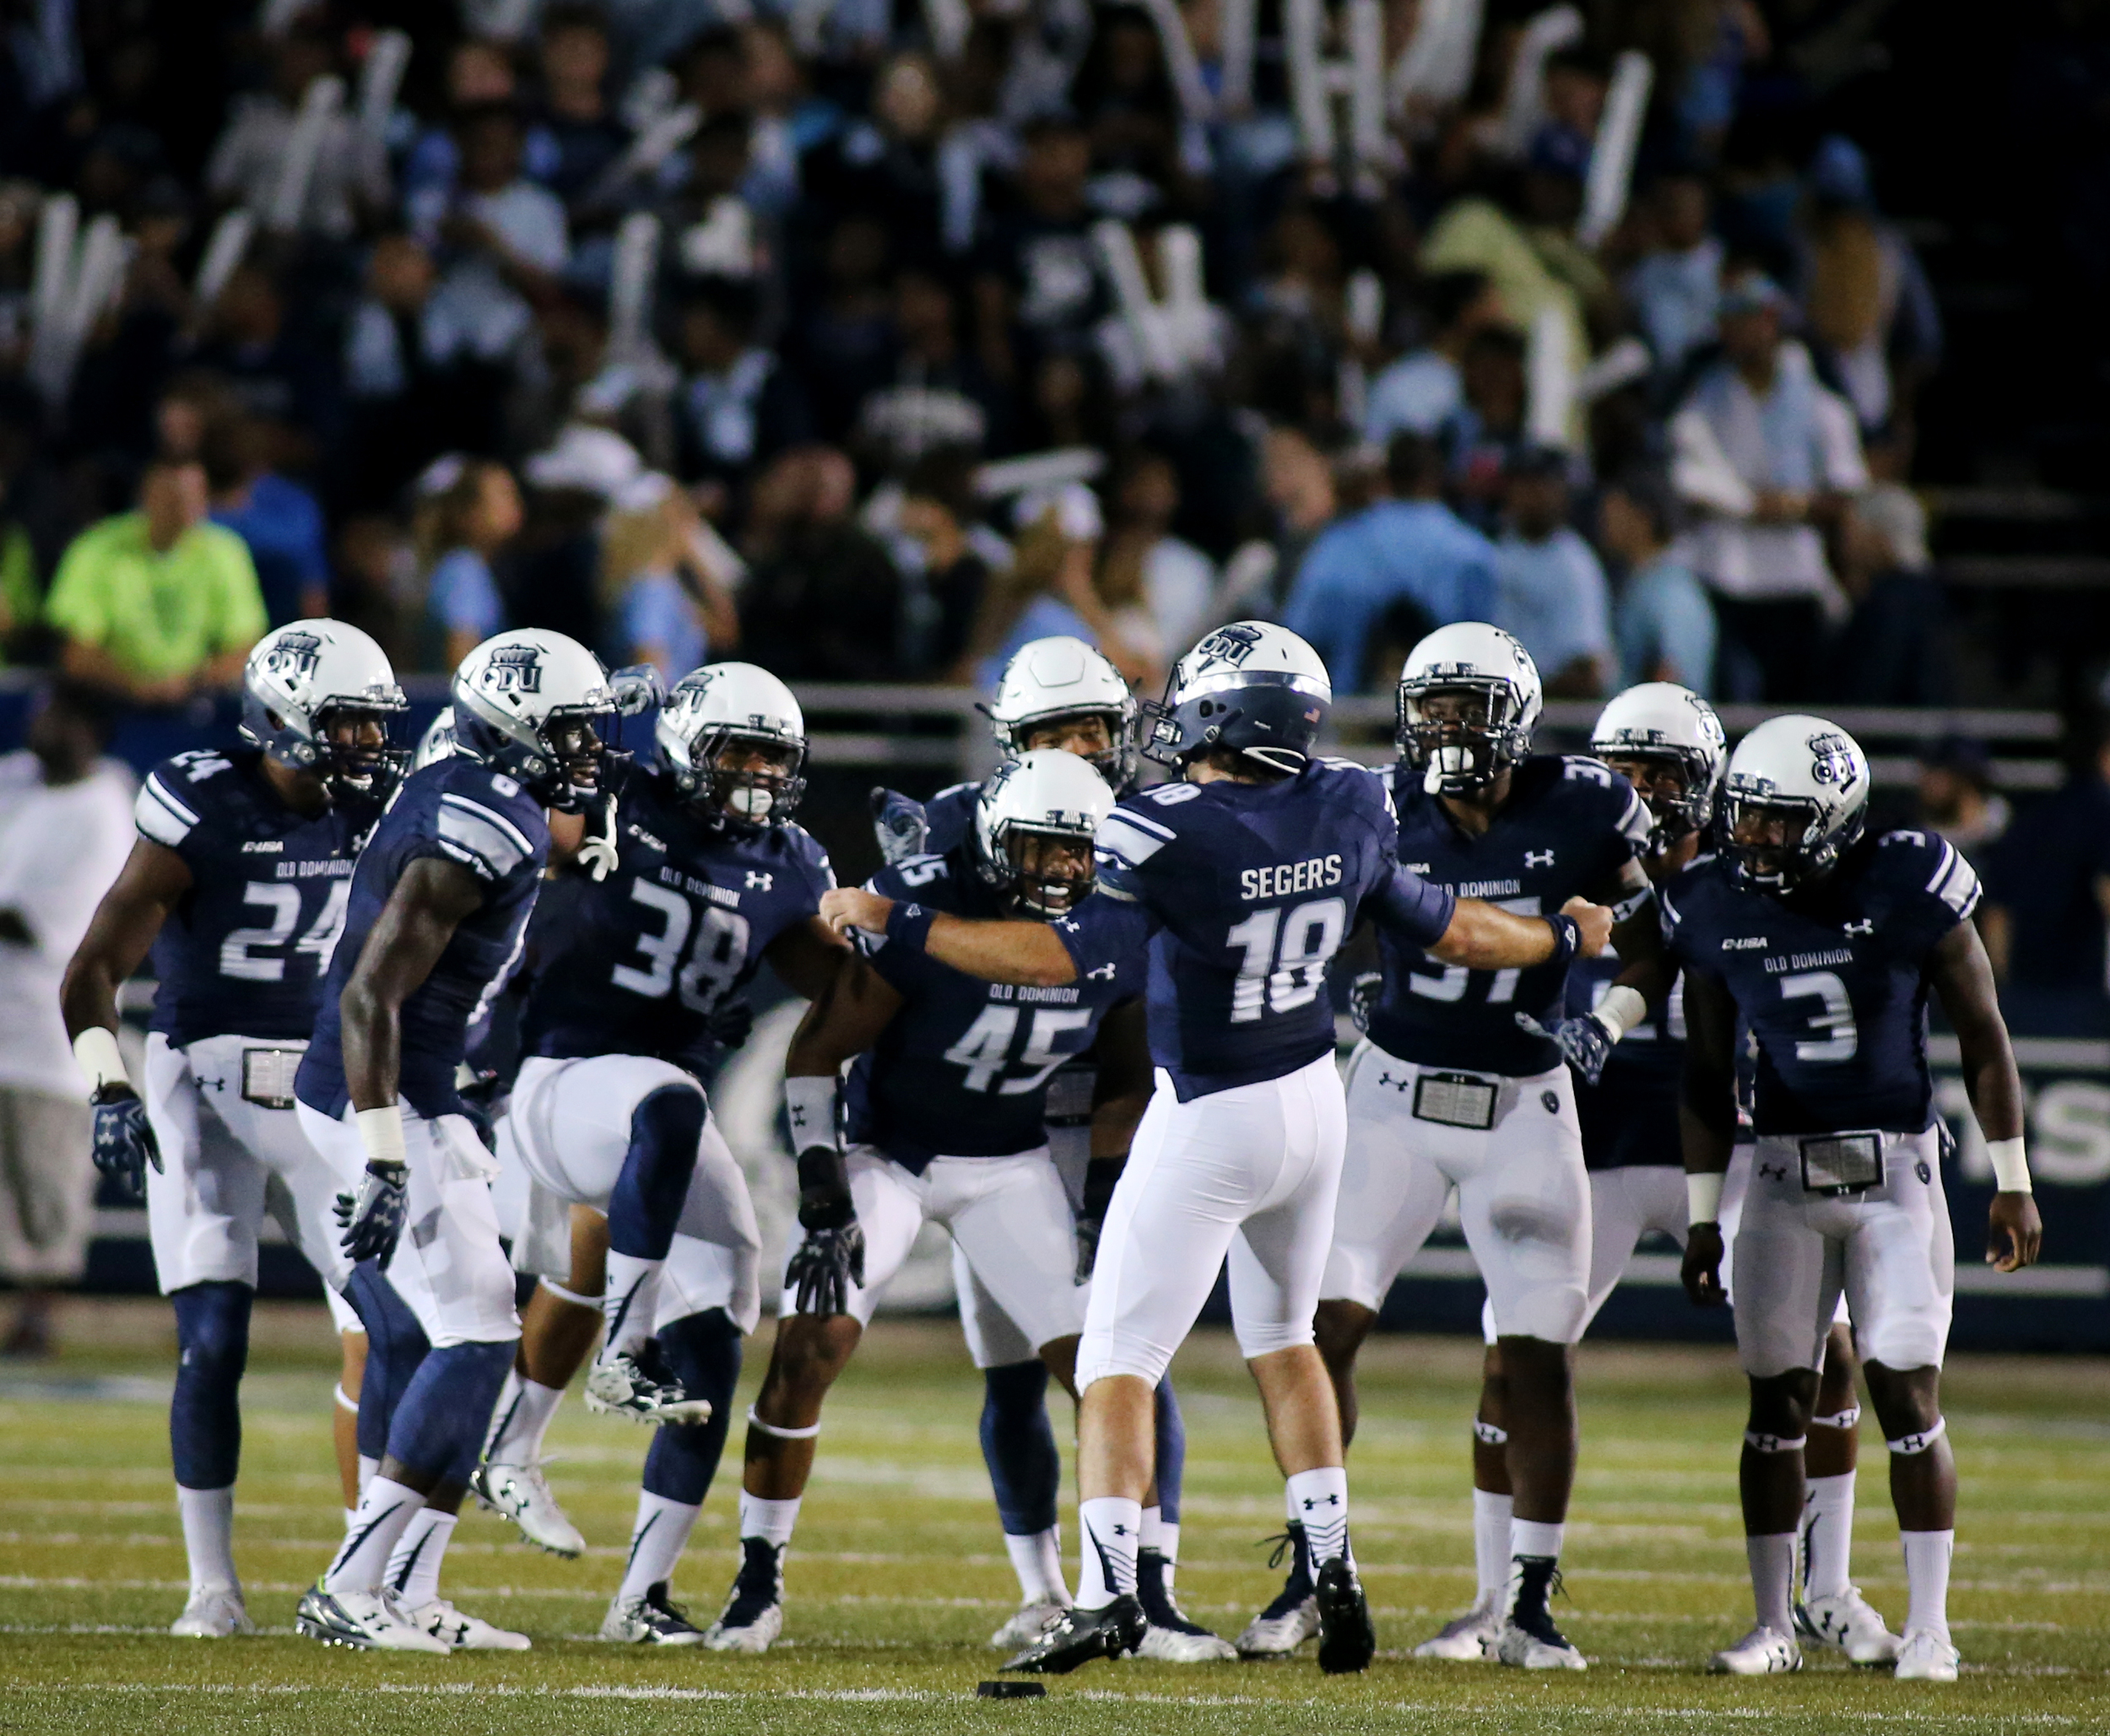 Old Dominion kicker Ricky Segers (18) gets the defense pumped up before the opening kickoff against Norfolk State, Saturday, Sept. 12, 2015 at Foreman Field in Norfolk.